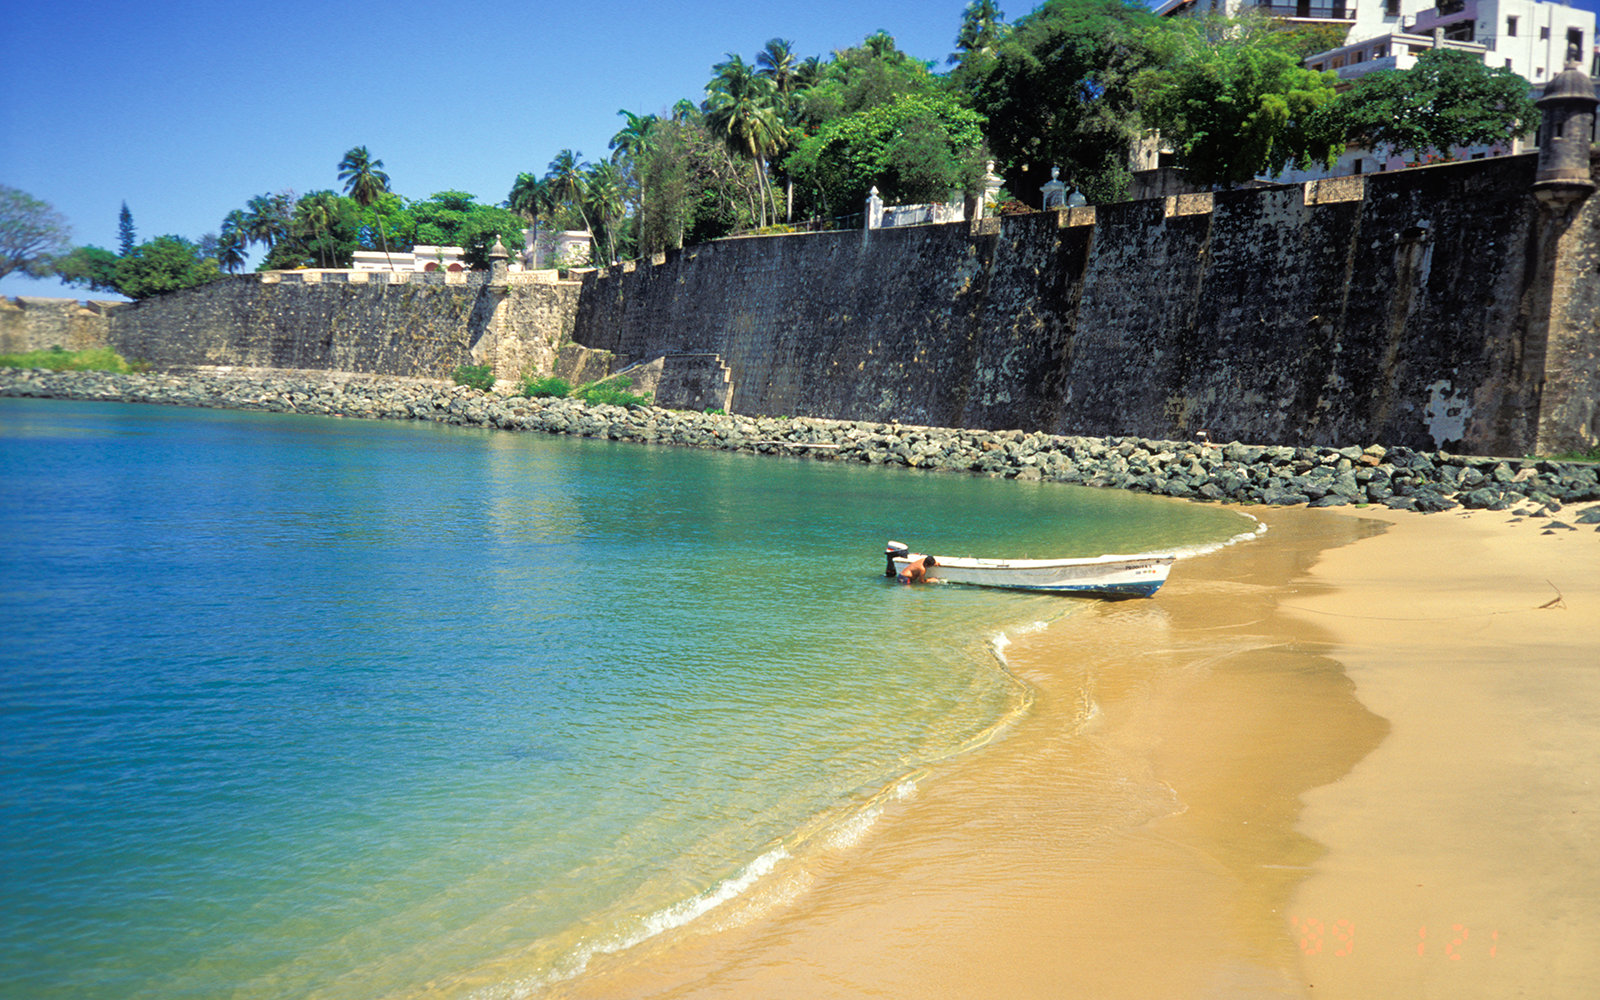 Puerto Rico, Old San Juan Beach. (Photo by Education Images/UIG via Getty Images)